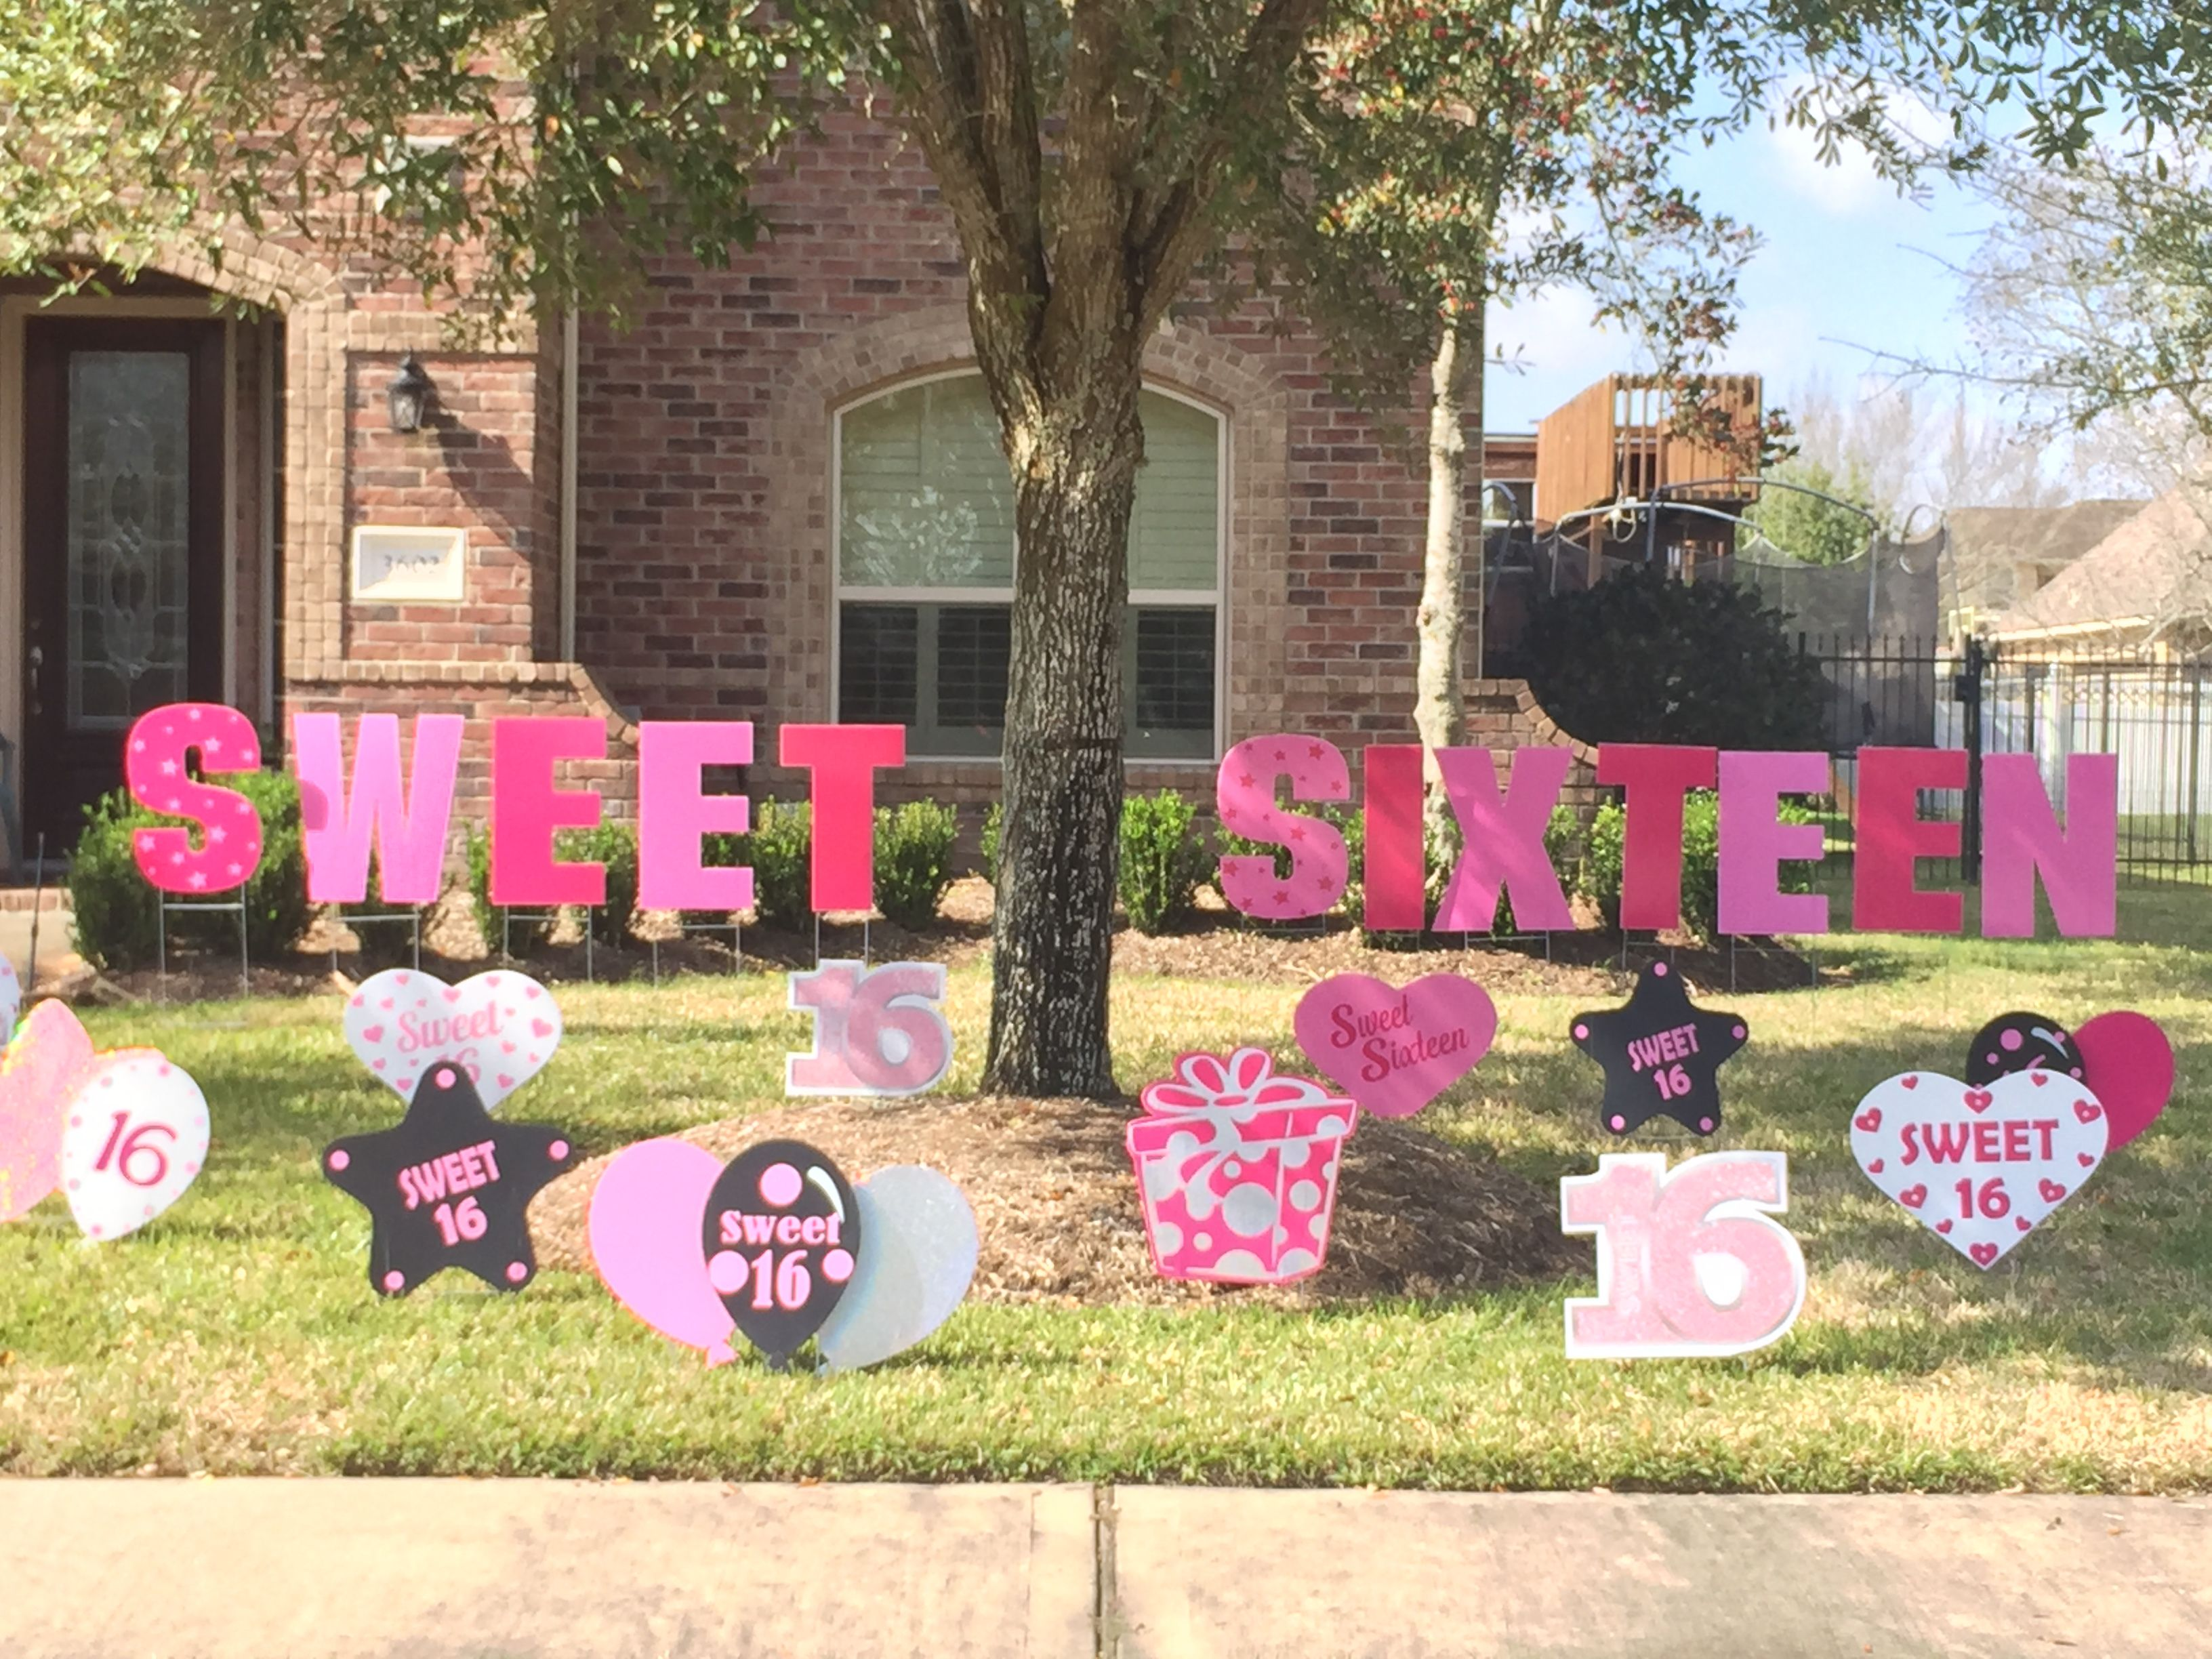 Introducing Our Beautiful New Sweet Sixteen Lawn Letters Along With Our Awesome Bling Sweet 16 Yard Sweet 16 Sign Birthday Yard Signs 16th Birthday Party